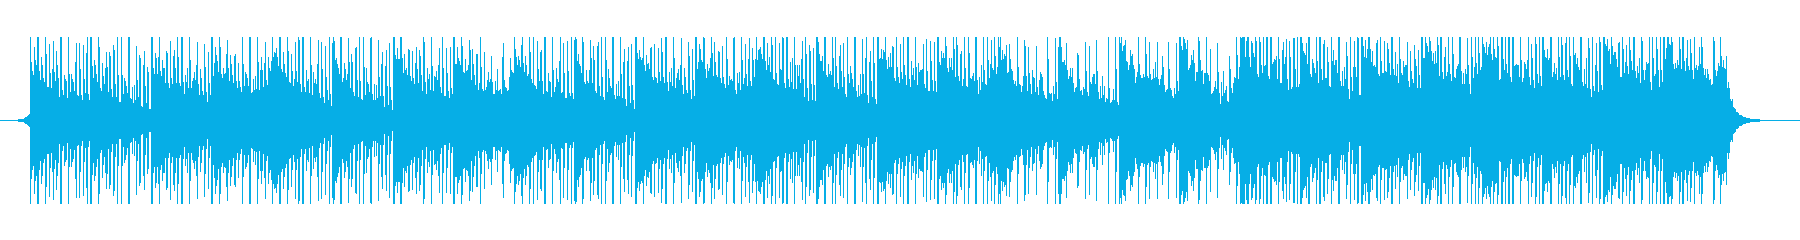 This Medical's reproduced waveform